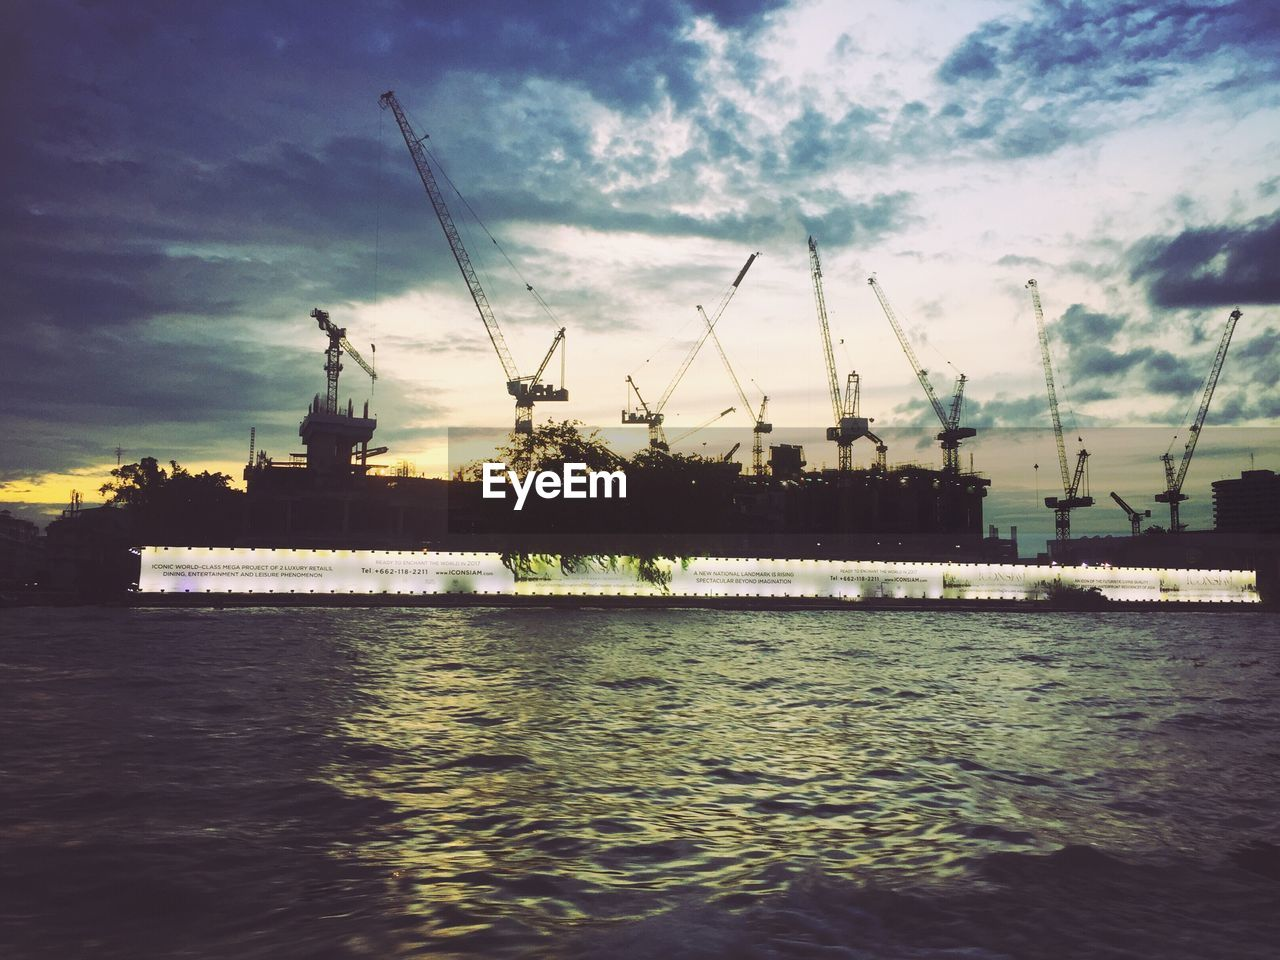 sky, water, waterfront, cloud - sky, outdoors, no people, built structure, architecture, crane - construction machinery, building exterior, river, crane, harbor, day, silhouette, commercial dock, travel destinations, nature, industry, nautical vessel, city, drilling rig